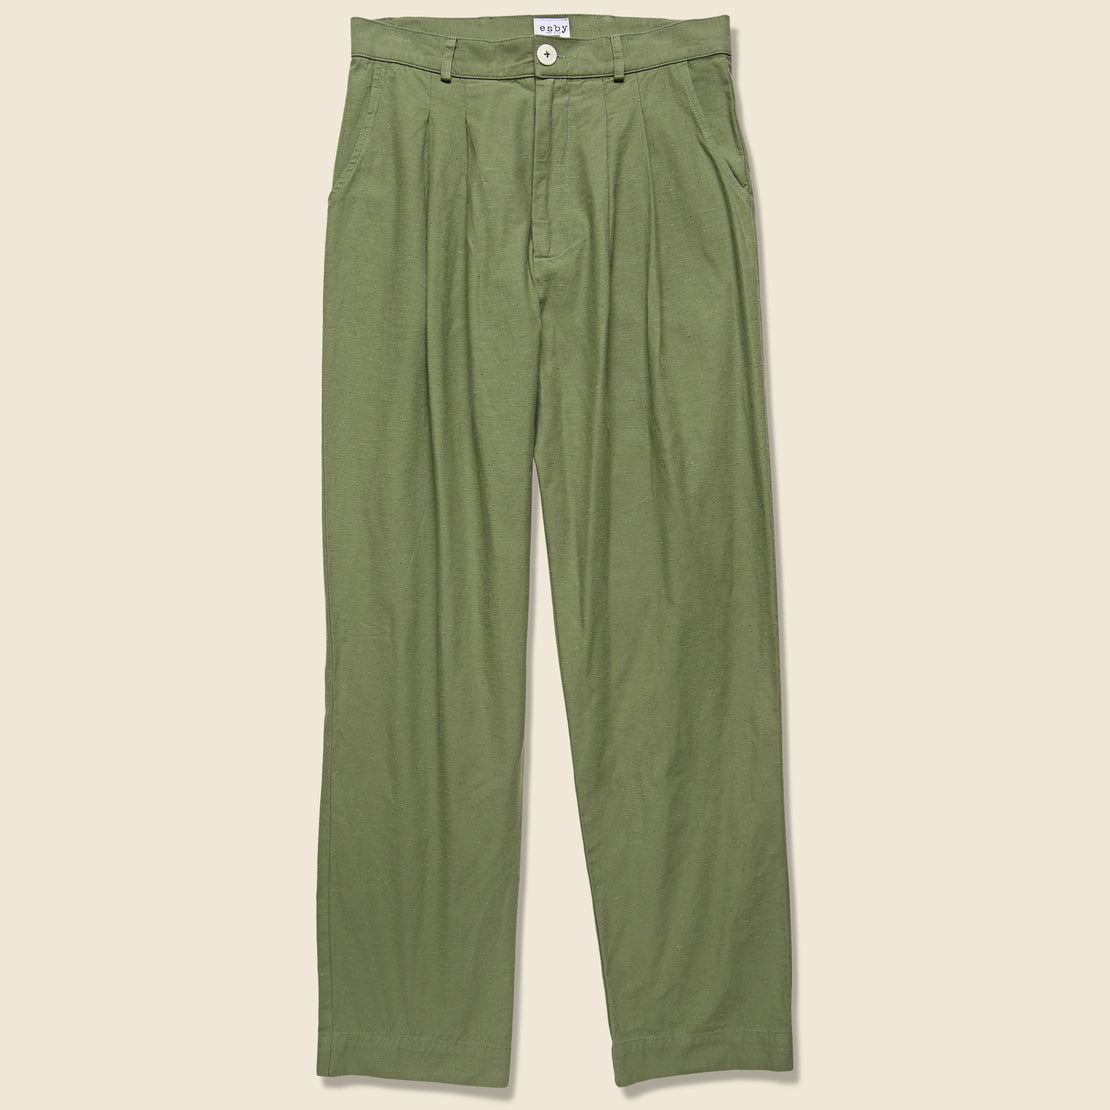 Esby Emma Trouser - Moss